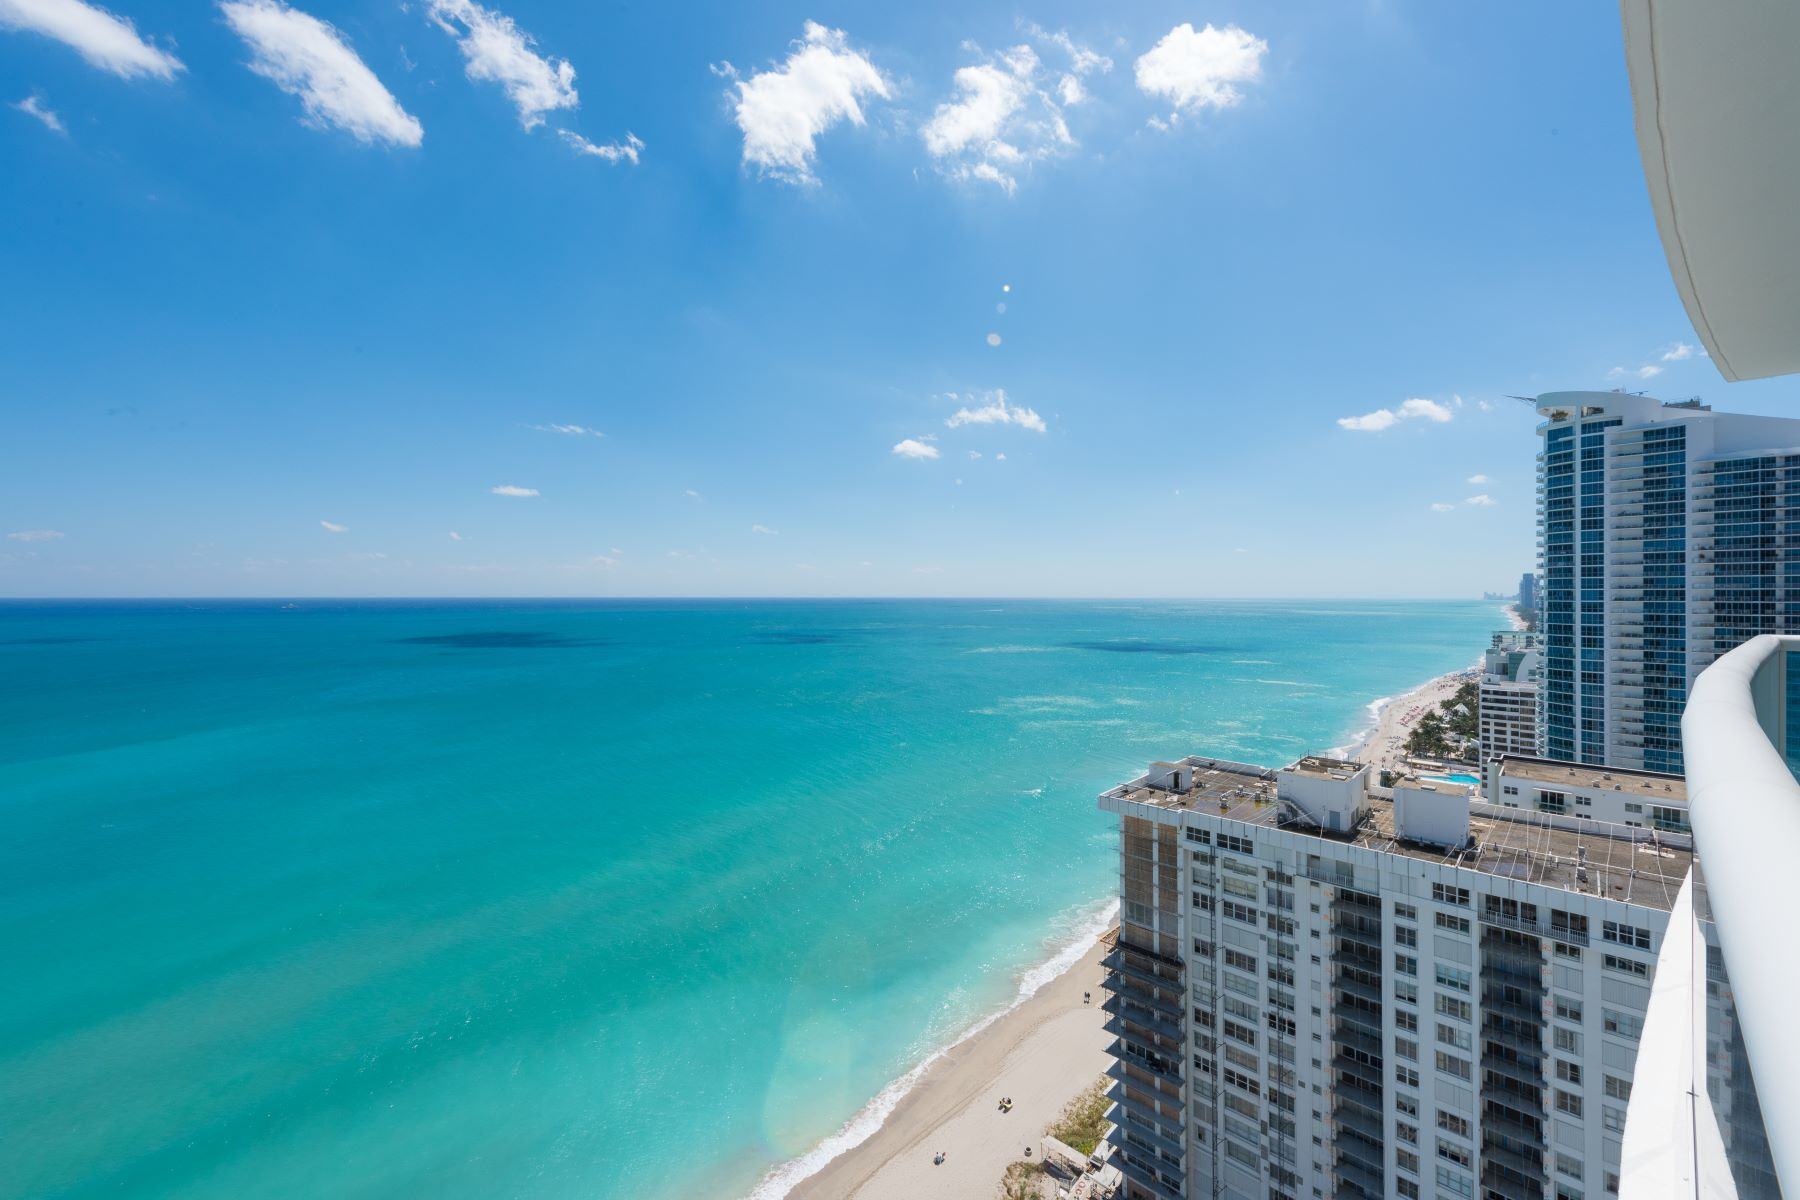 Condominium for Sale at 2711 S Ocean Drive 2711 S Ocean Drive 2604 Hollywood, Florida 33019 United States